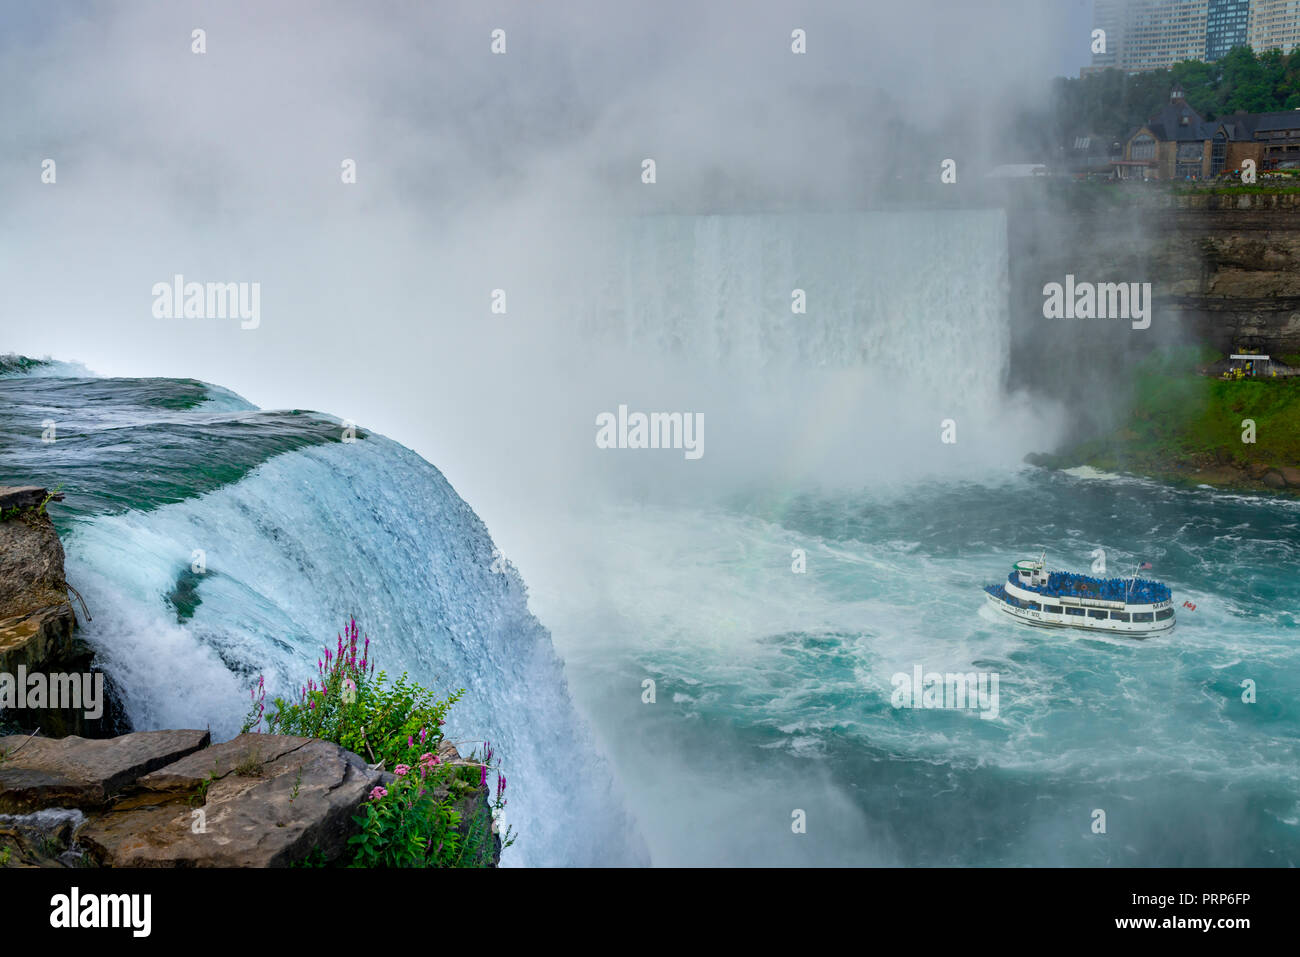 Maid Of The Mist Sightseeing Boat, Niagara Falls, Canada - Stock Image